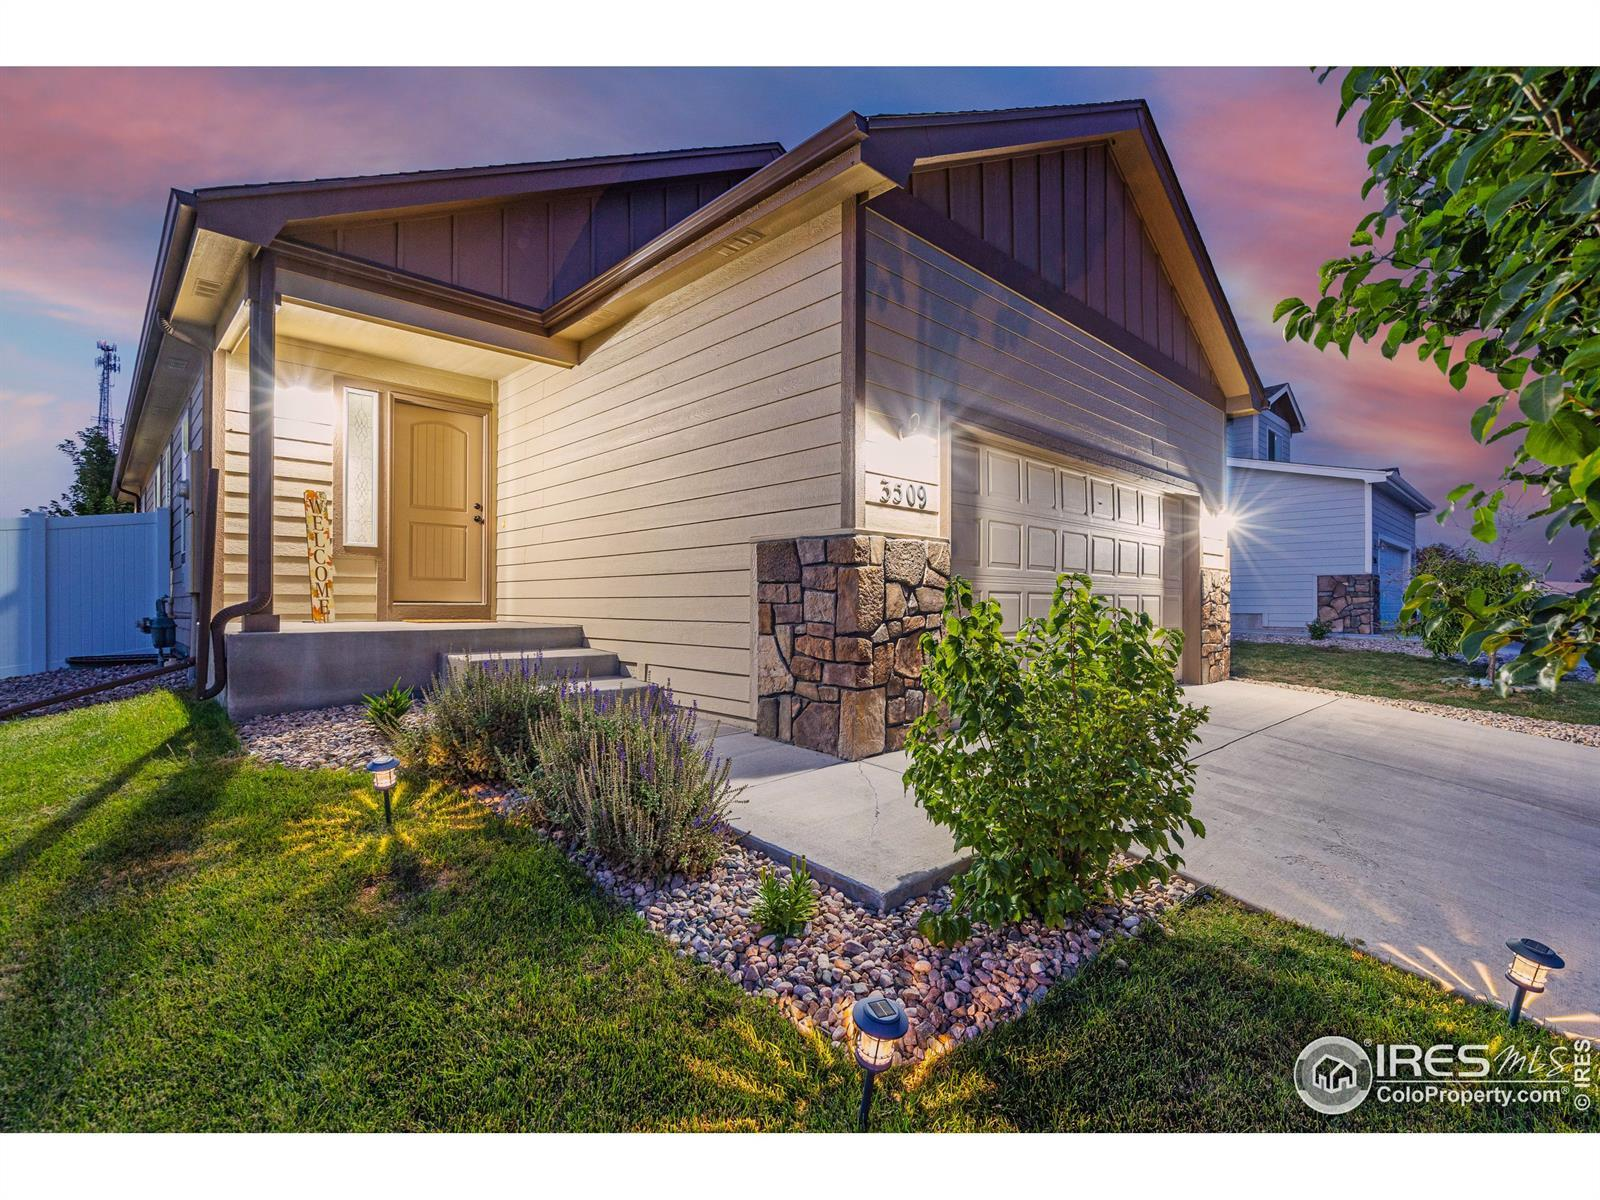 3509 Willow Drive, Evans, CO 80620 - #: IR950433